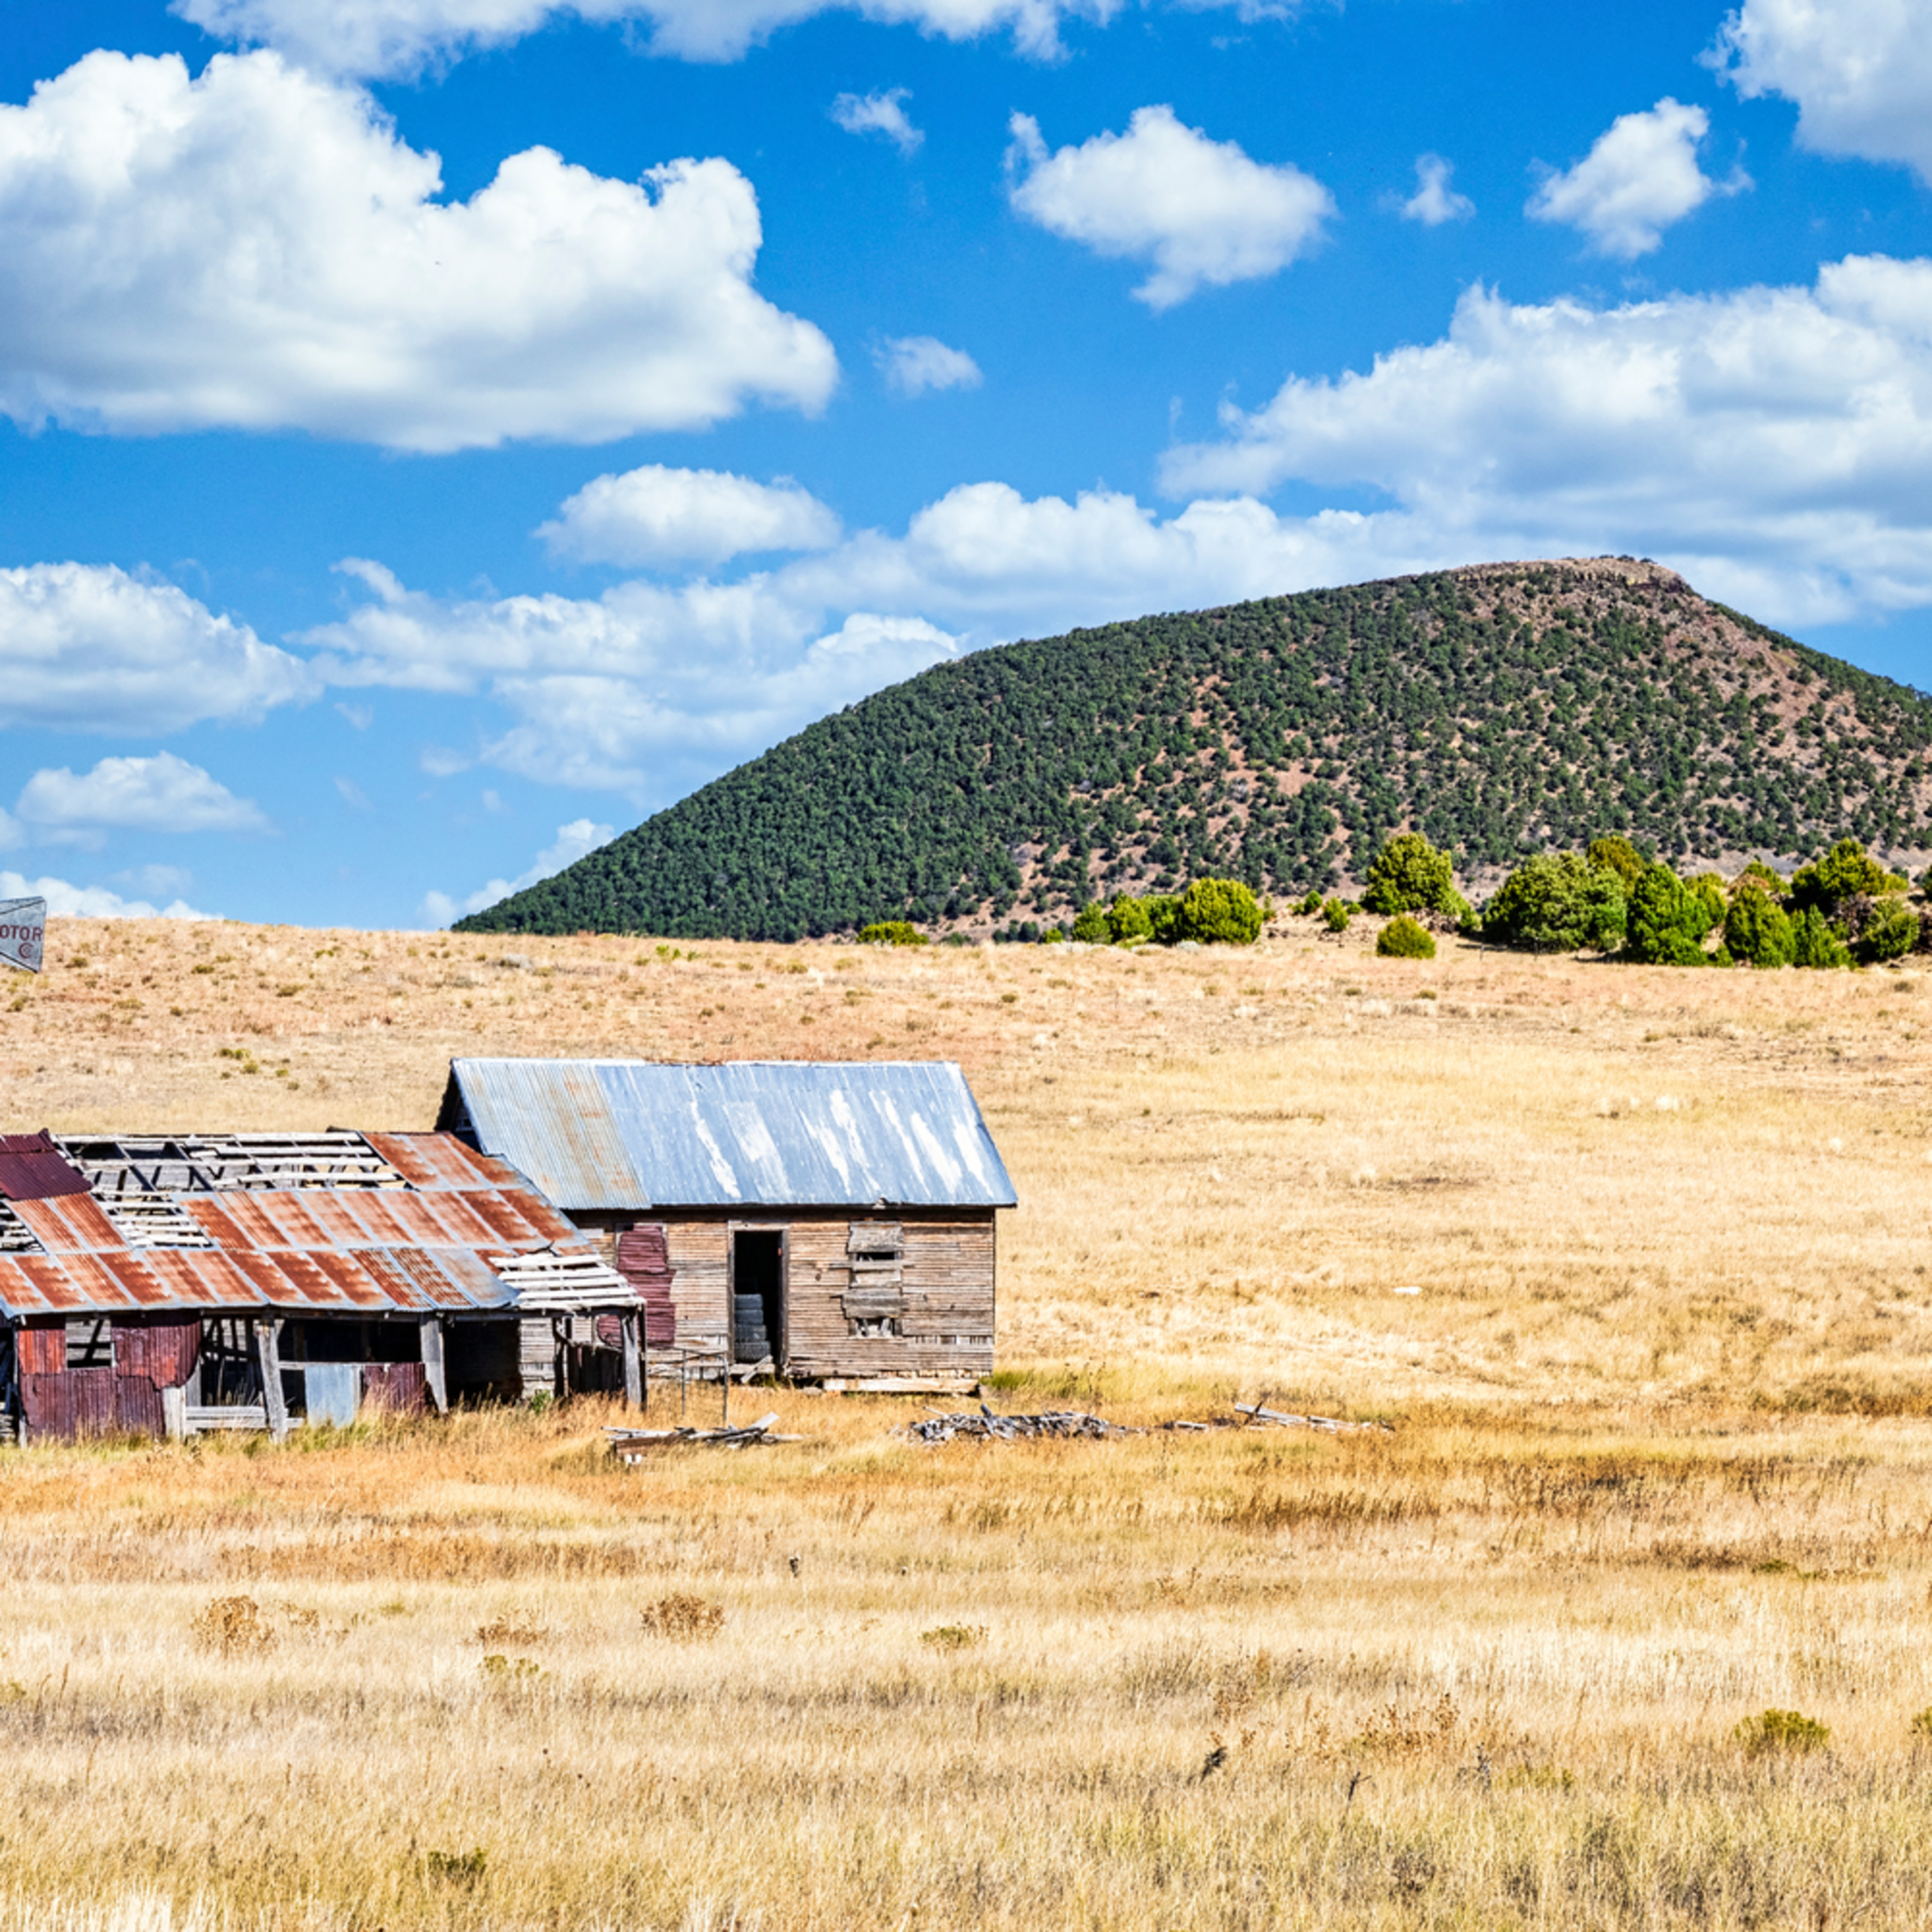 Andy crawford photography high plains homestead uuweiv